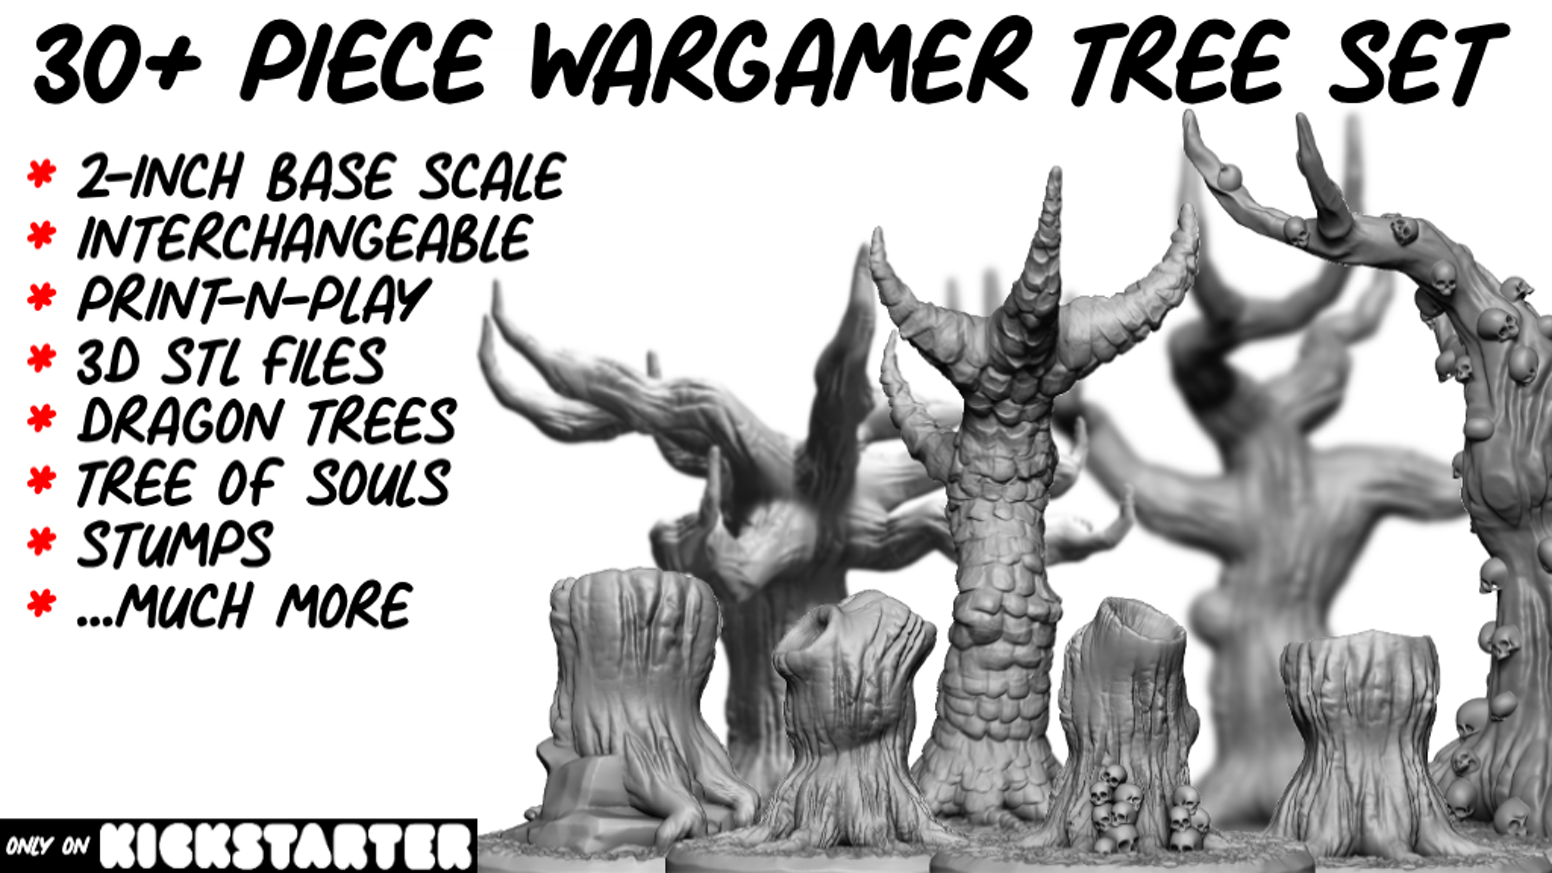 High-quality STL Wargamer trees for 3D printing...useable in all role-playing games.